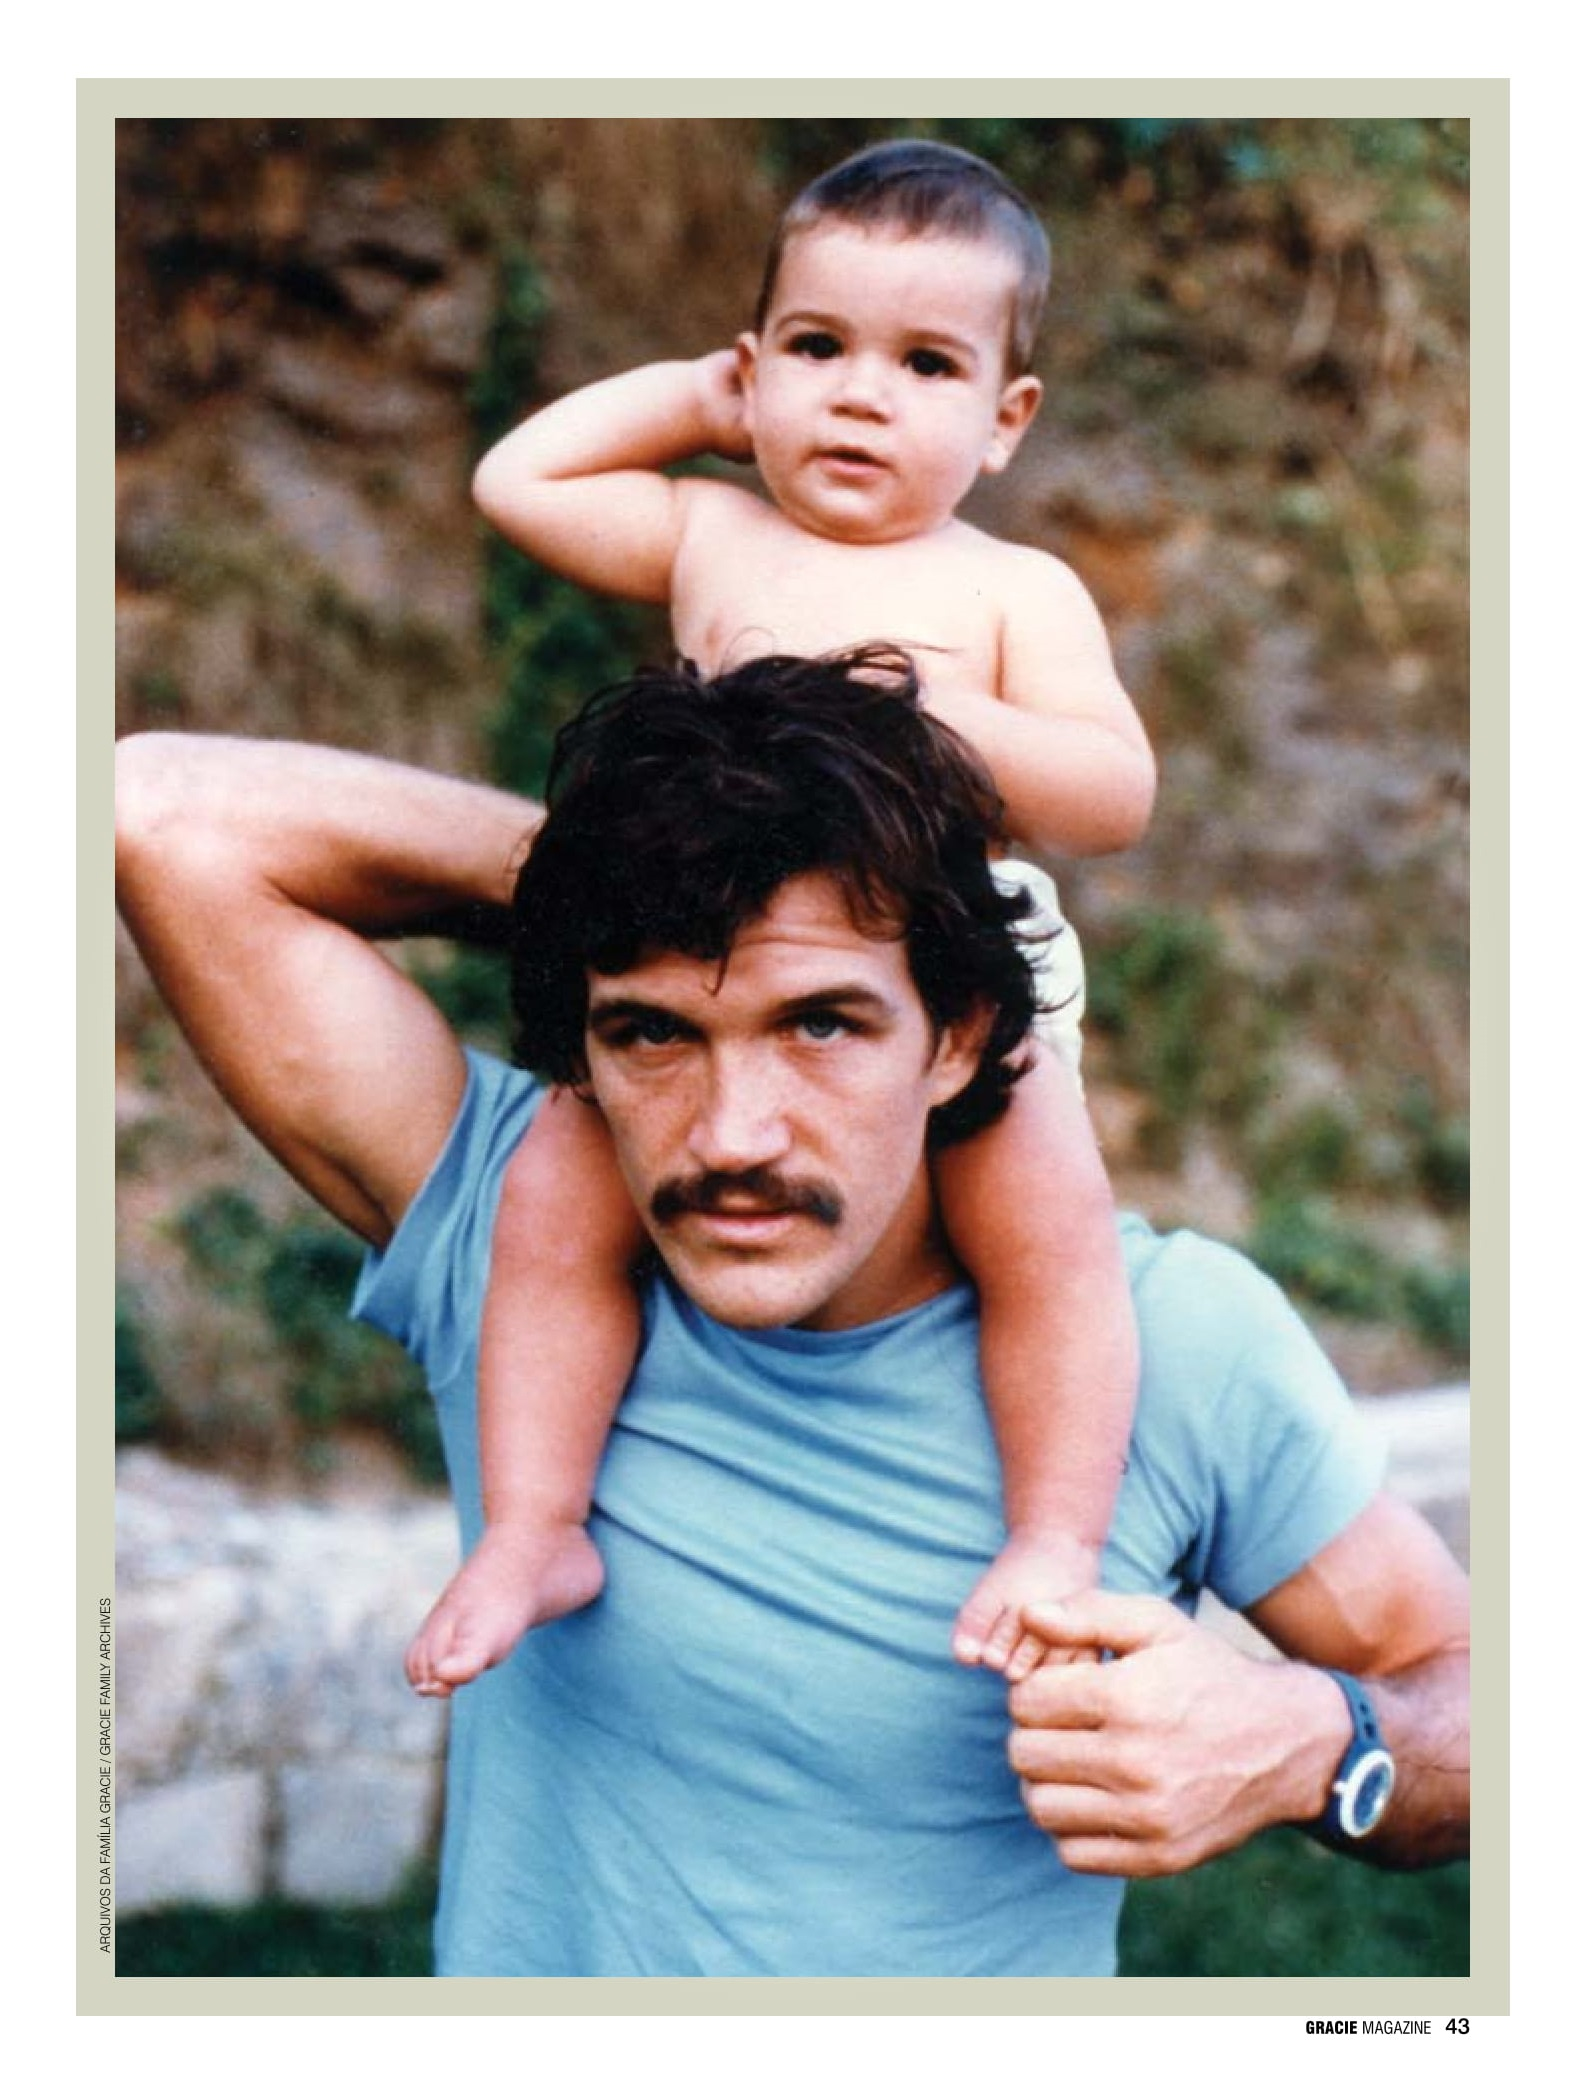 The Lessons Of Rolls Gracie, Who Died Young And Changed